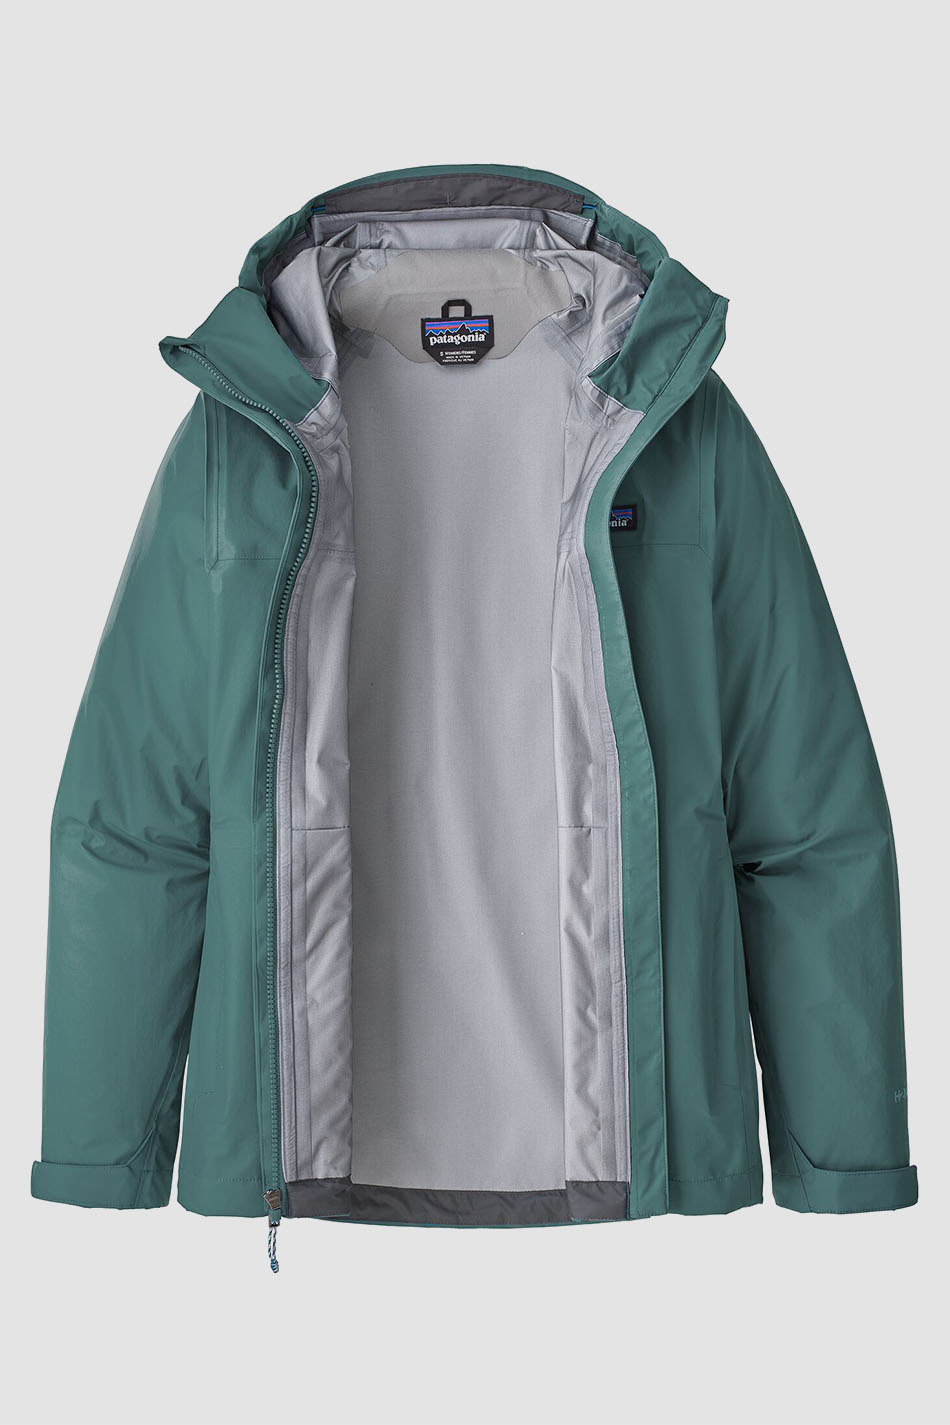 Chaqueta Patagonia Torrent Shell